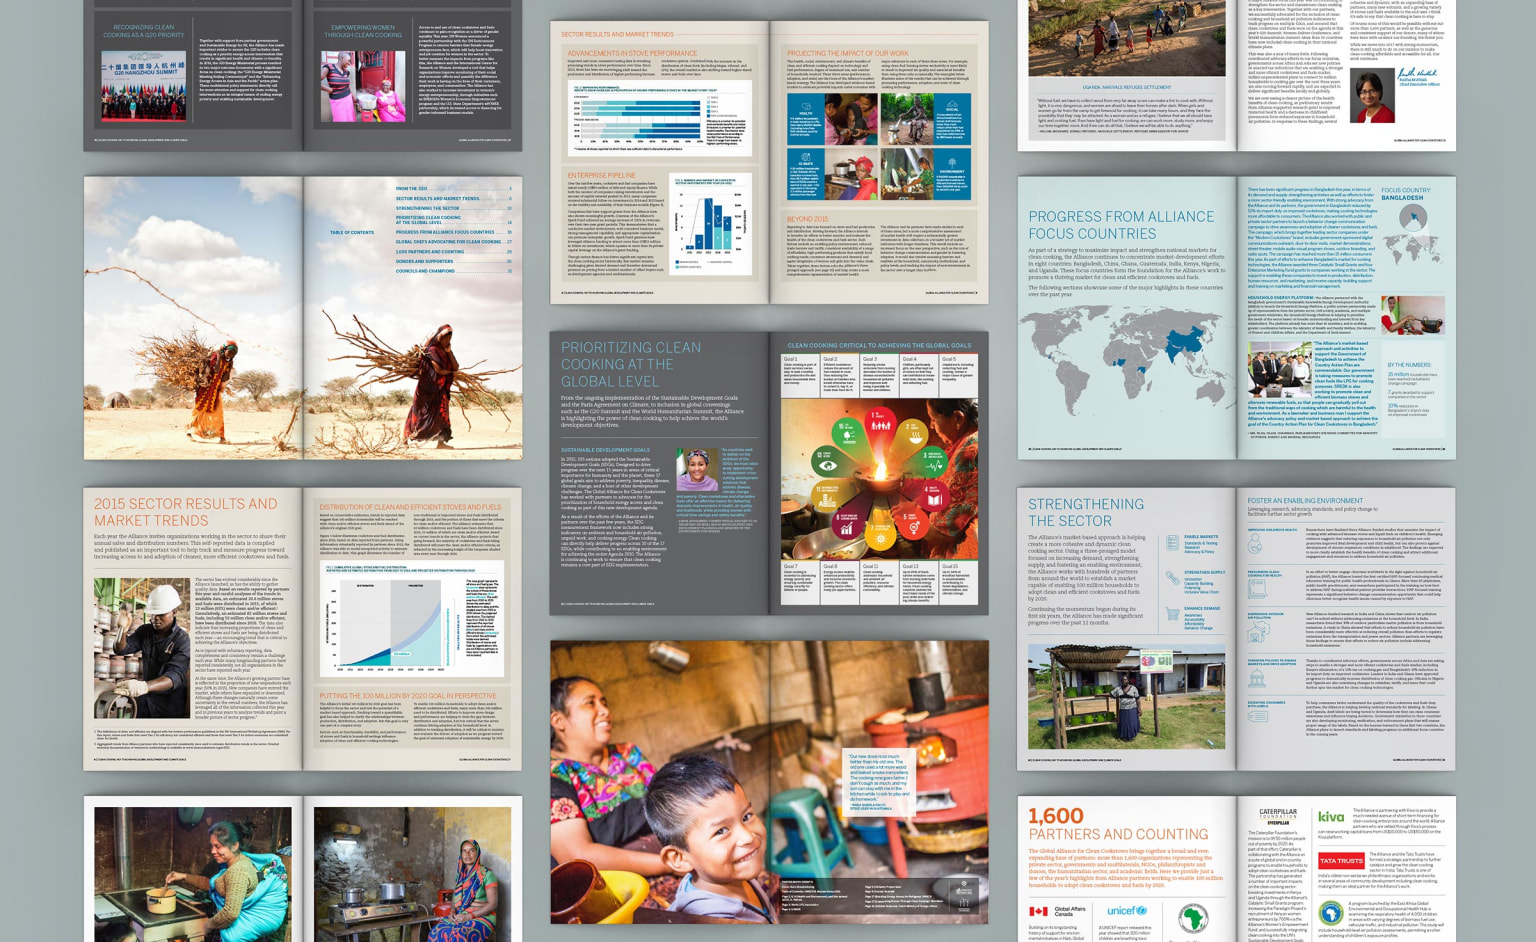 Global Alliance for Clean Cookstoves 2016 Annual Report